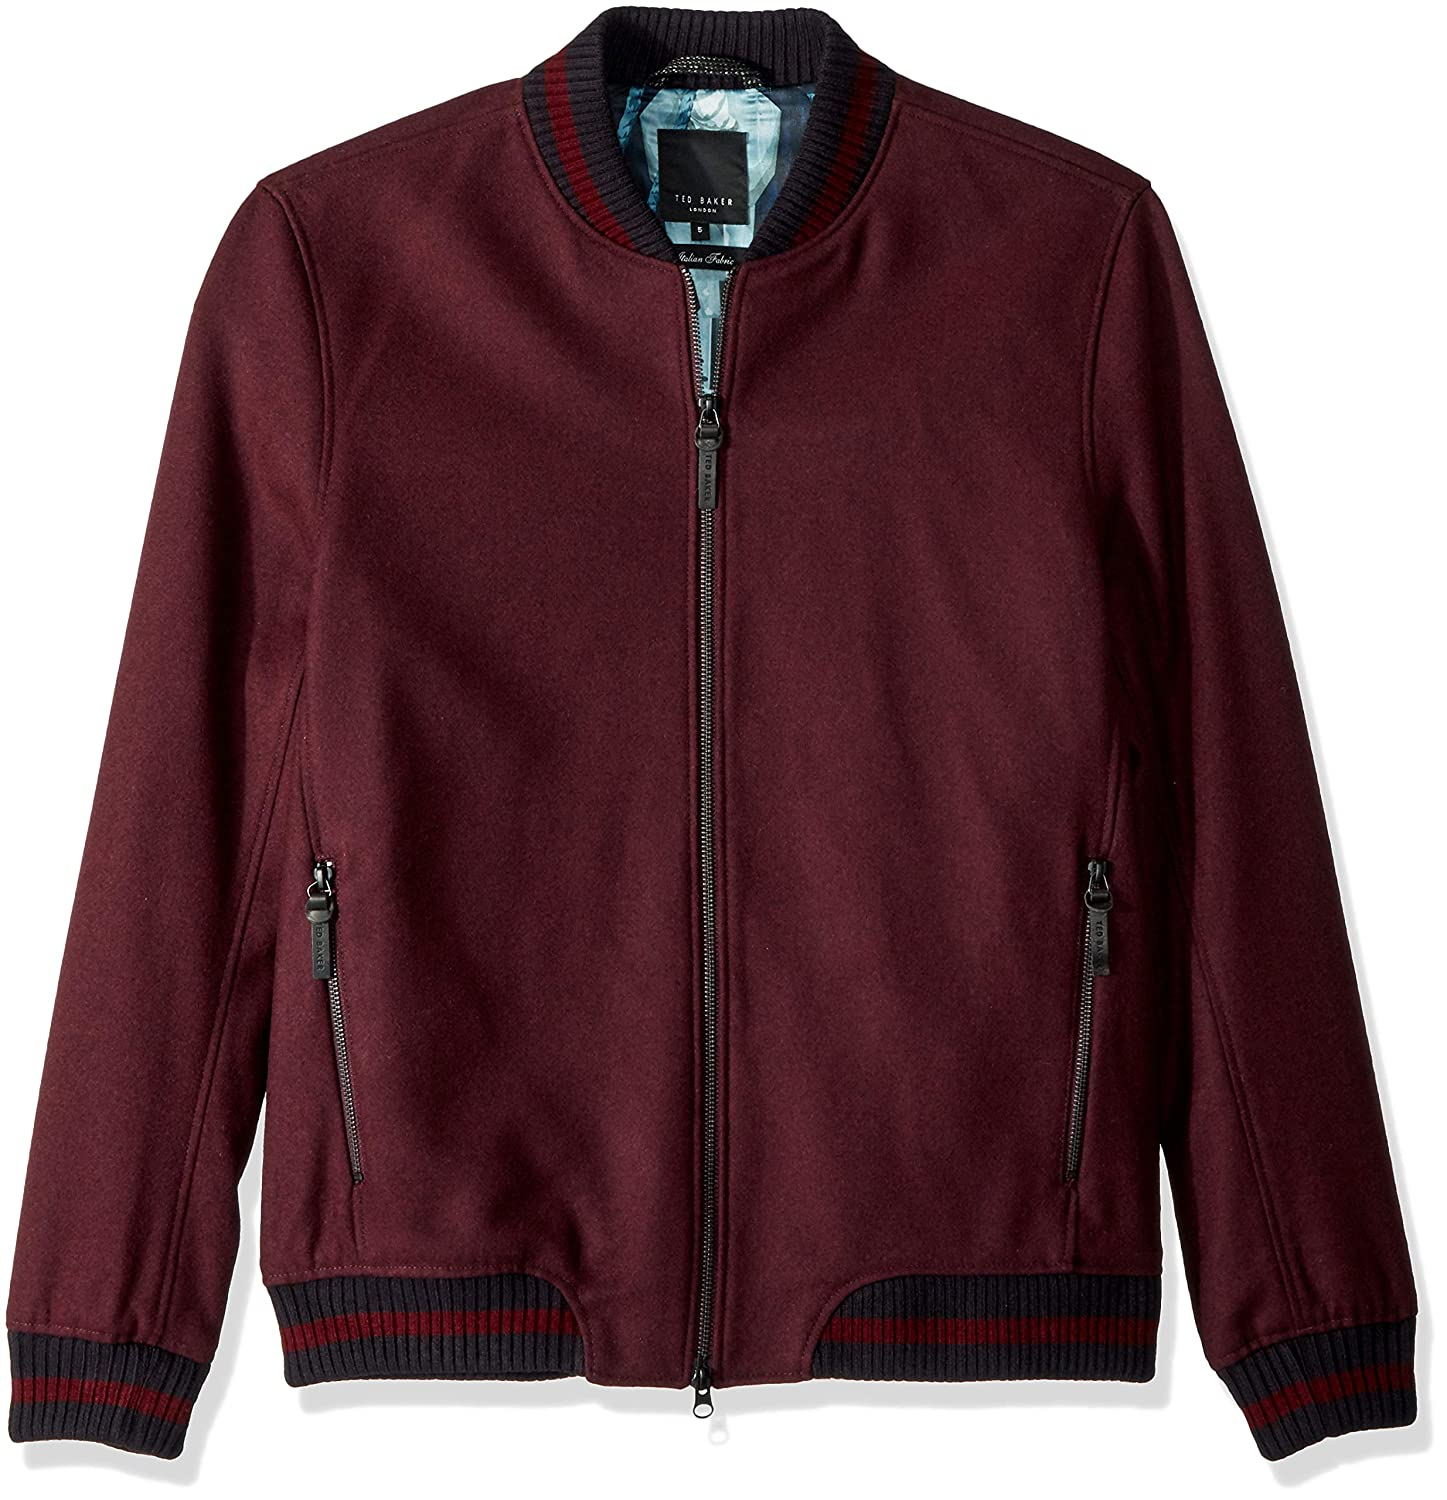 de2de5402 Amazon.com: Ted Baker Men's Freddy Modern Slim Fit Wool Bomber ...